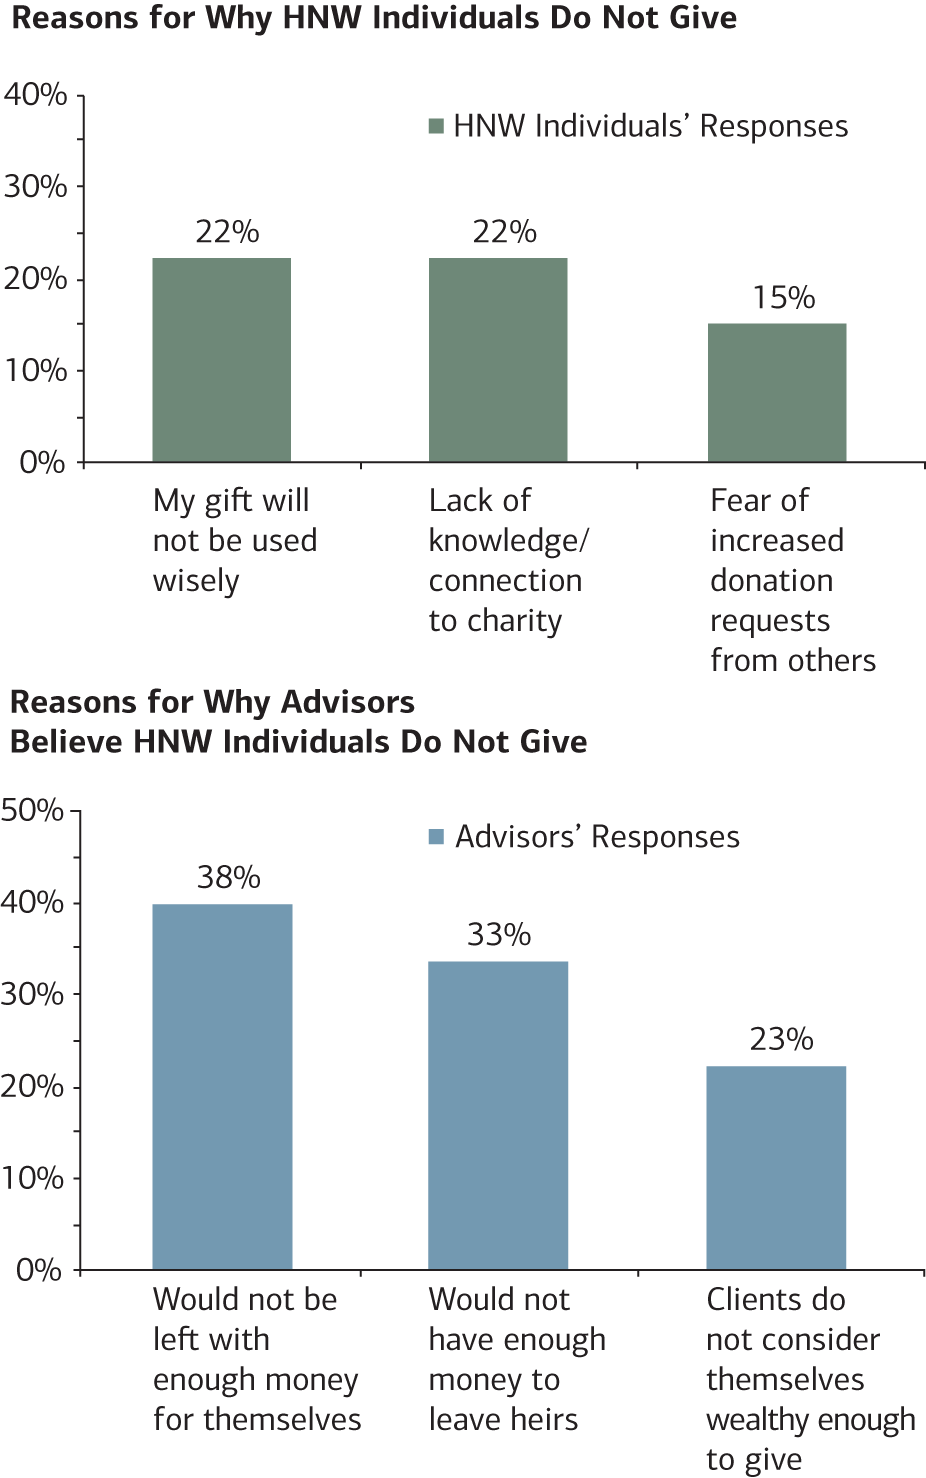 Chart 5/6:  These charts look at the inhibiting factors of HNW giving and advisors perceptions.